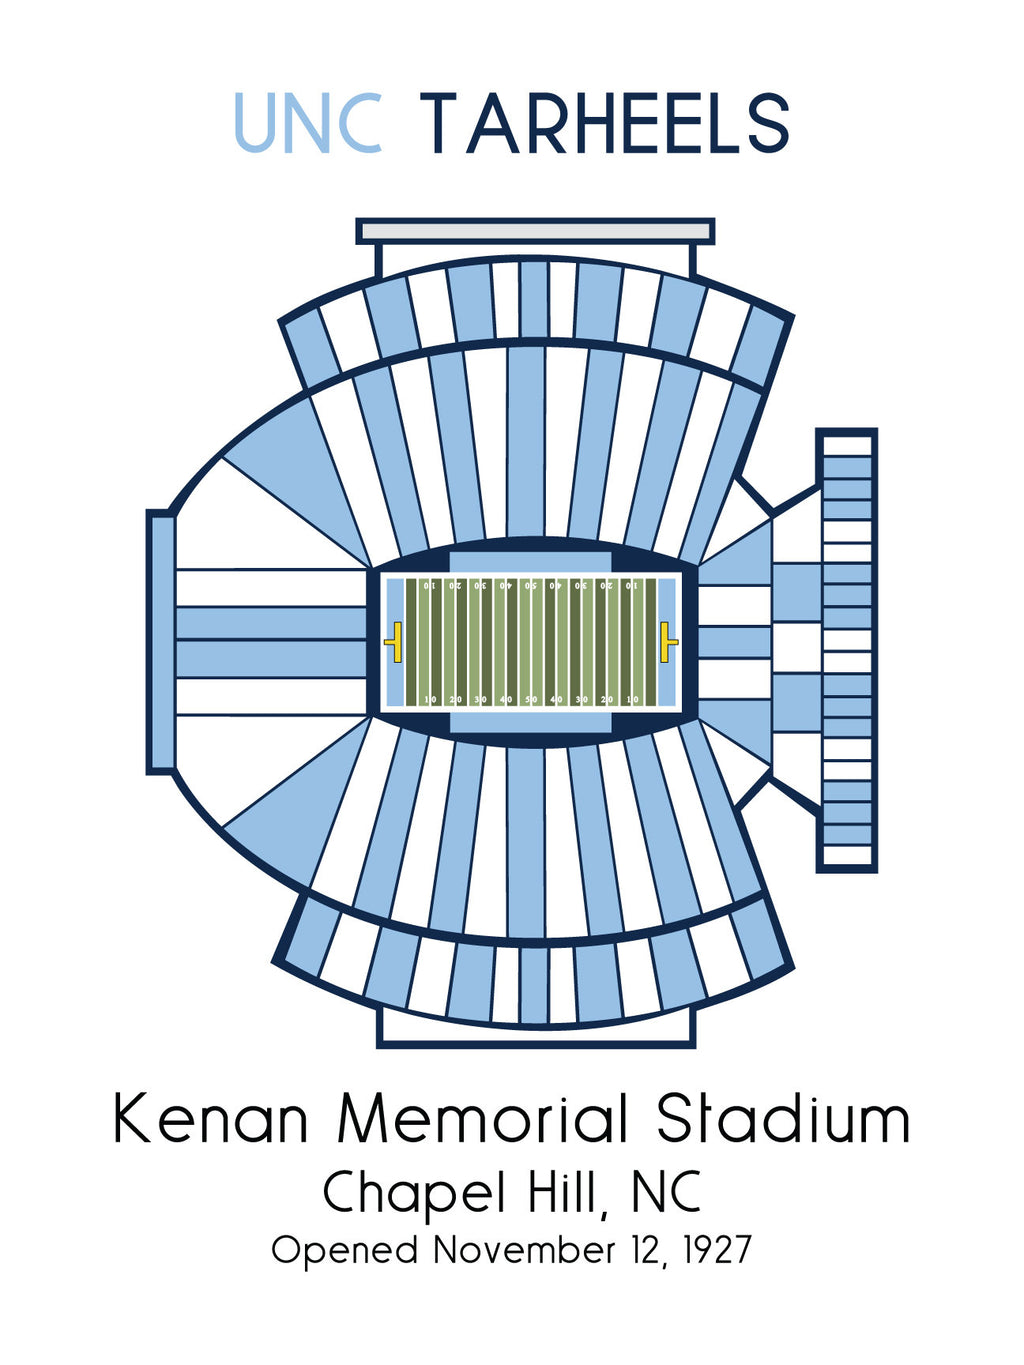 Kenan Memorial Stadium, UNC, UNC Tarheels, Chapel Hill, Tar Heels, UNC Football, College Football, Carolina Tarheels, Football Stadium